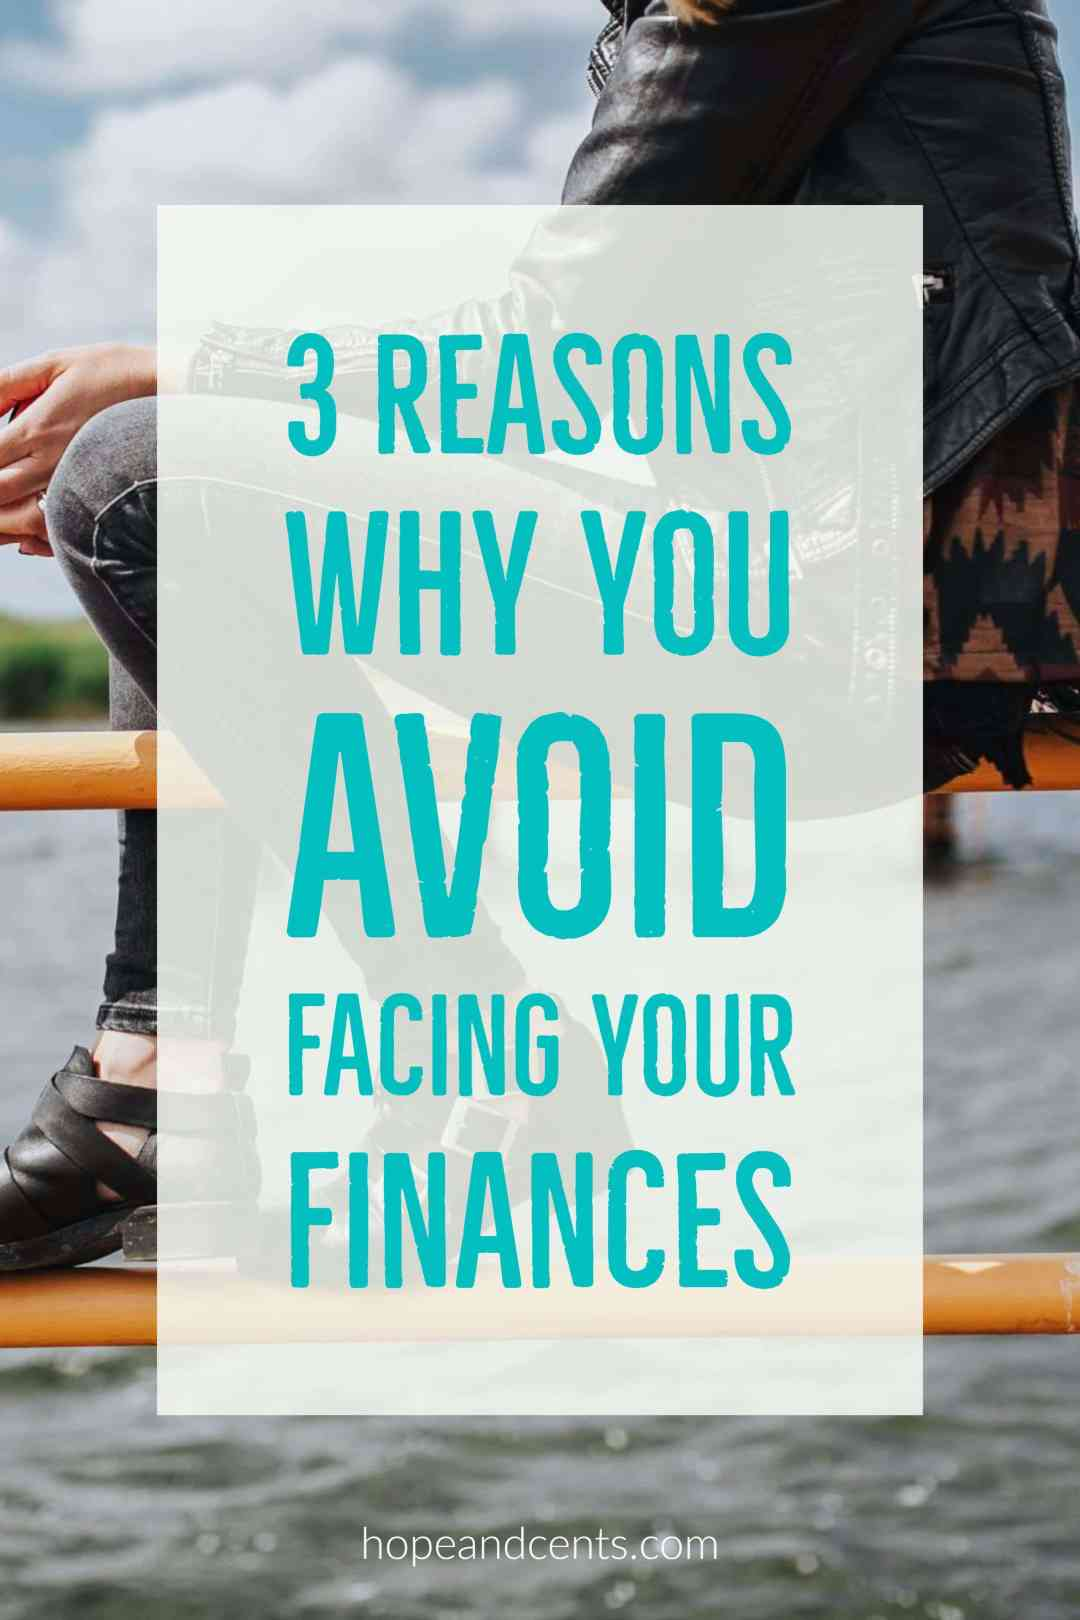 Are you avoiding your financial situation. Ignoring your finances can make them go from bad to worse. Identify the reasons you're avoiding your financial situation and what you can do about it.